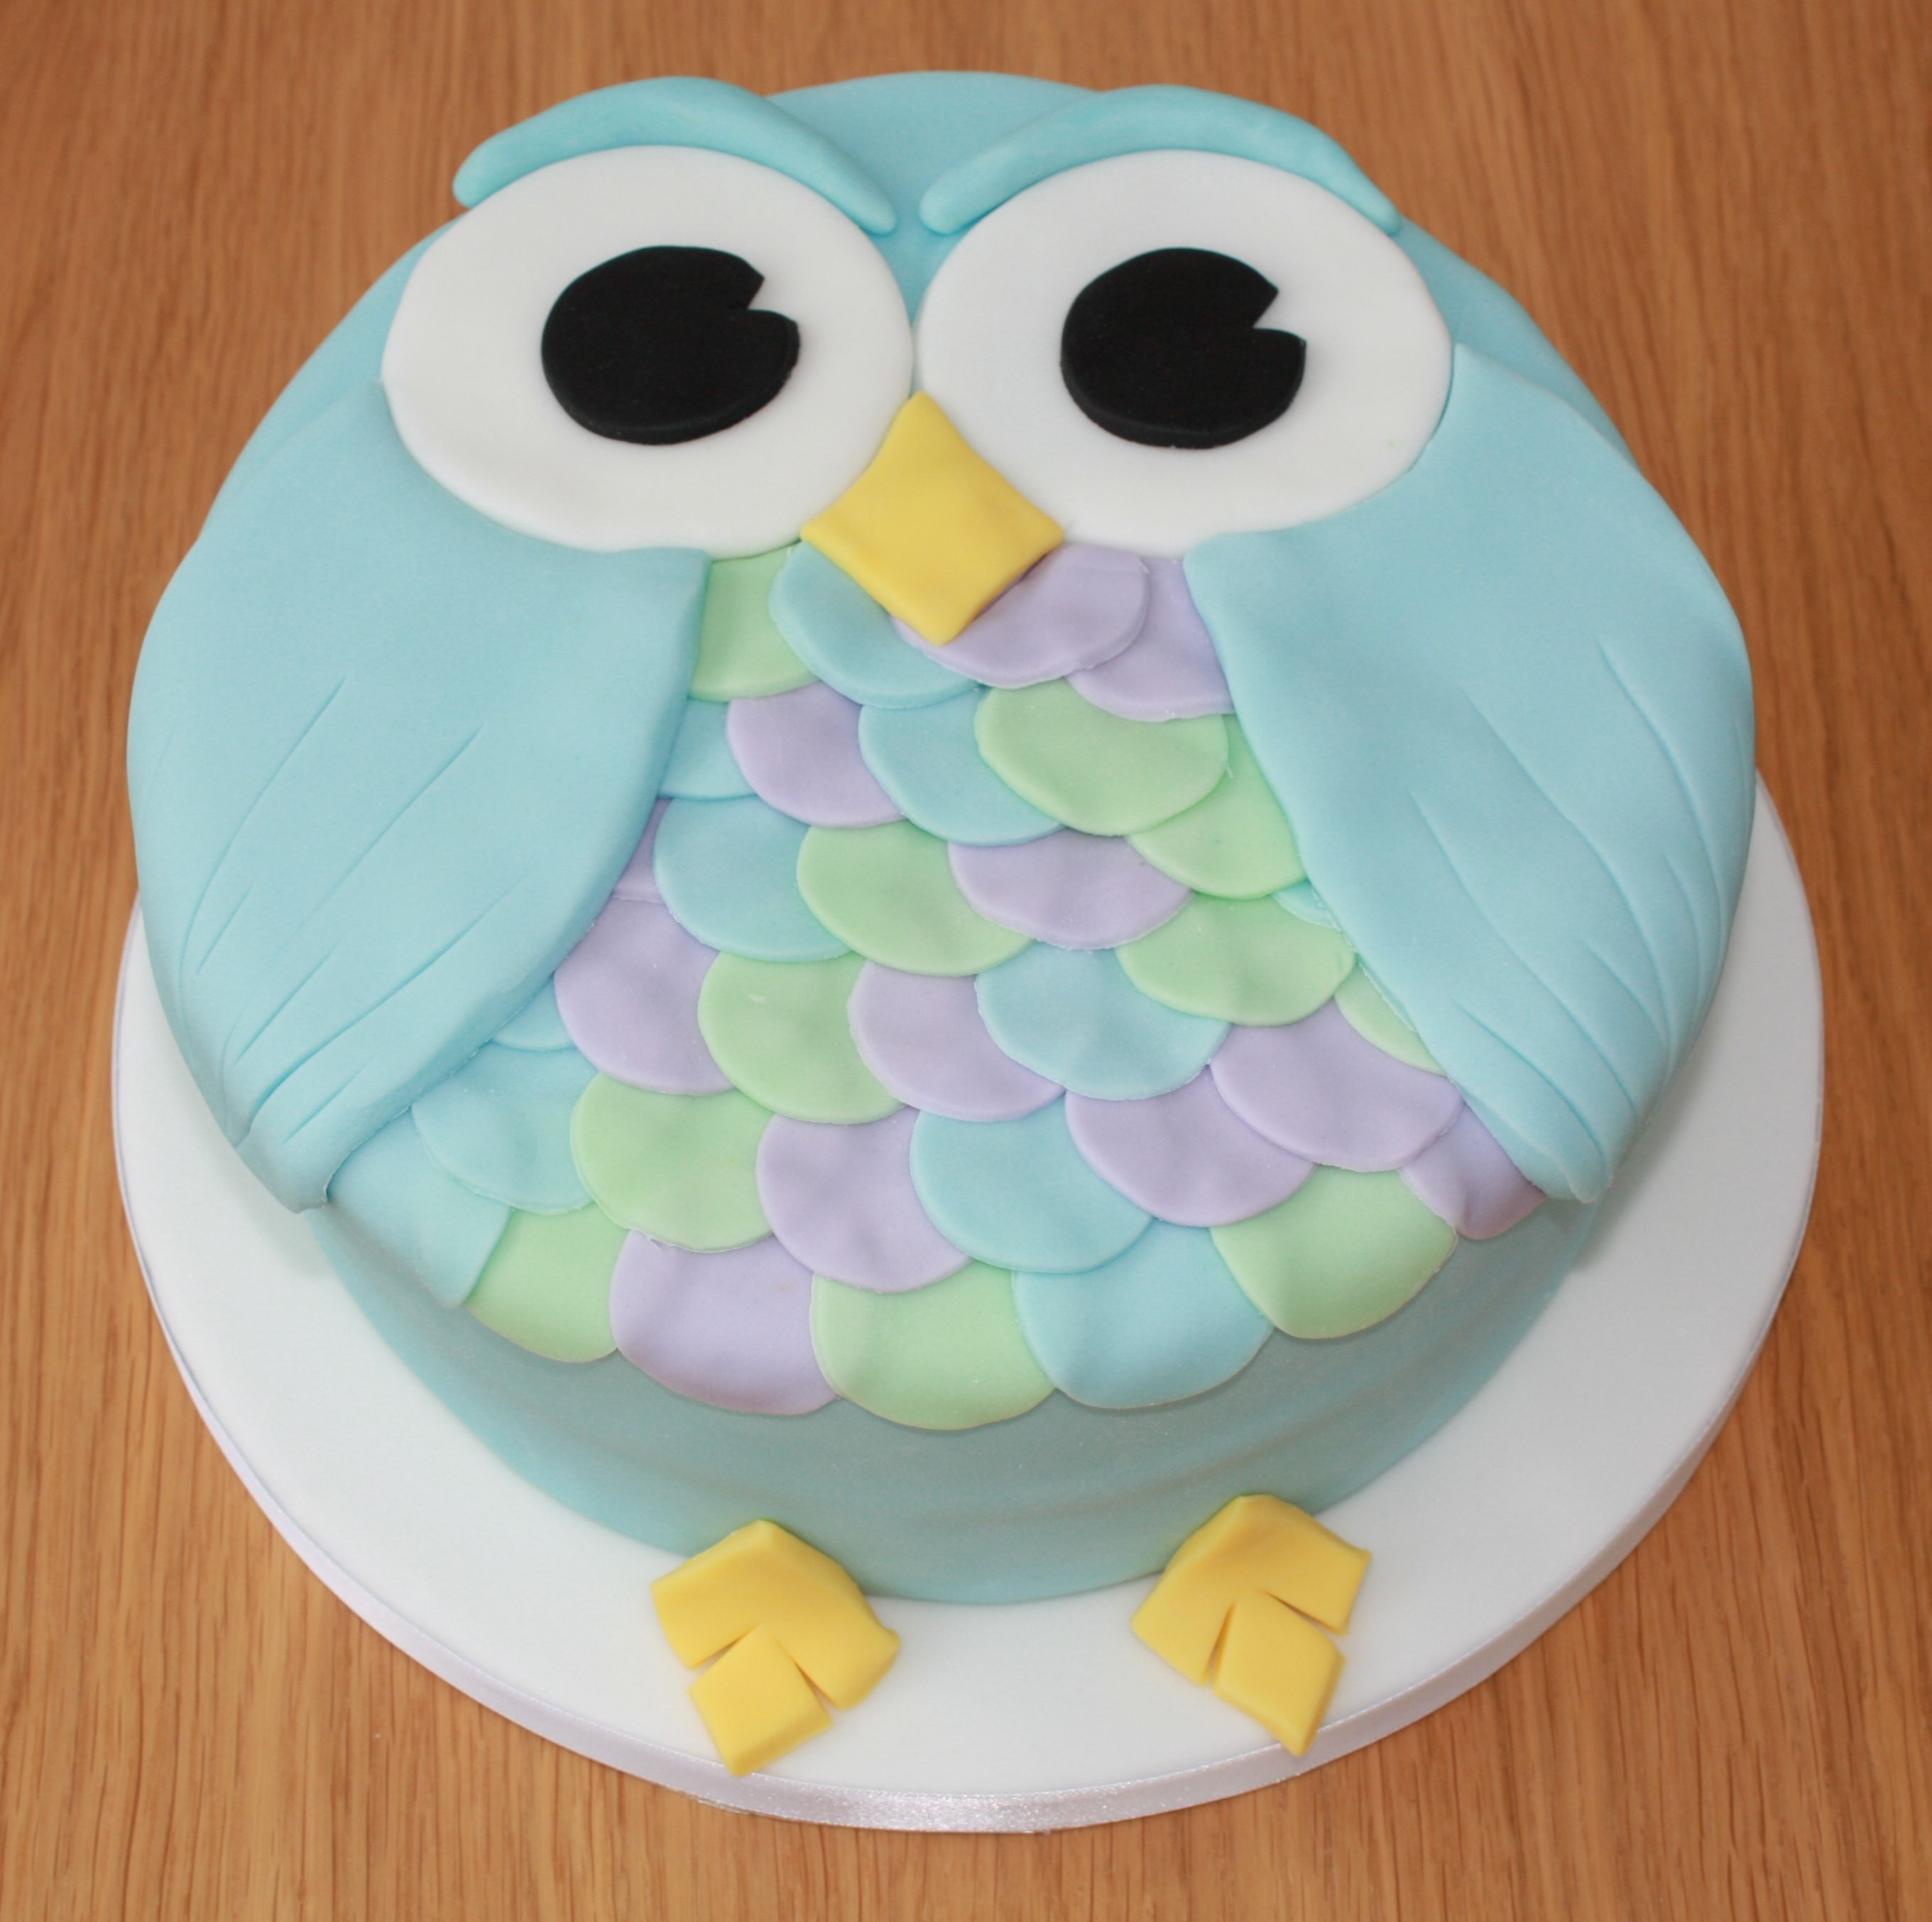 Owl Birthday Cake Clever Ideas Pinterest Owl birthday cakes